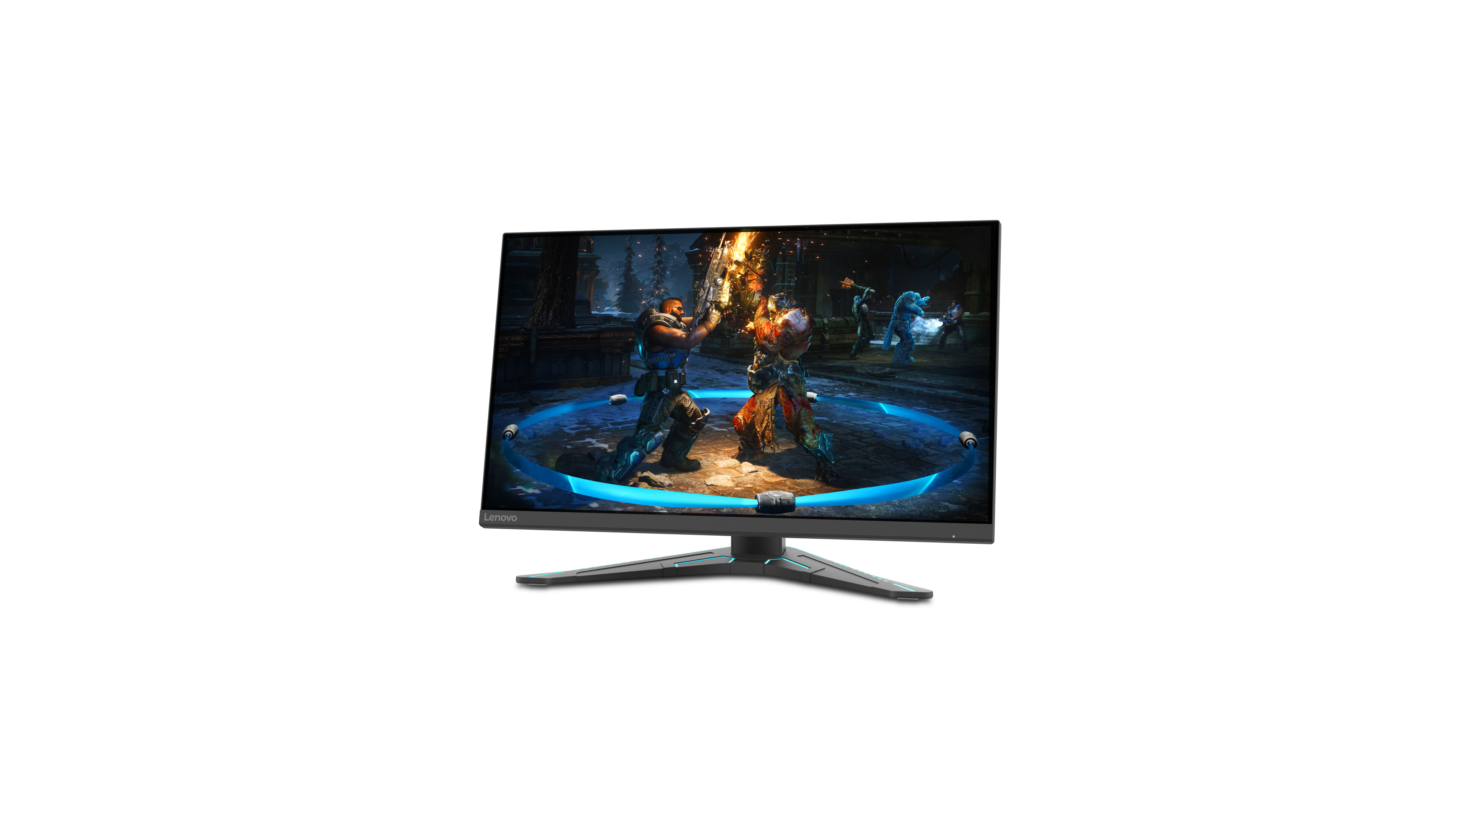 lenovo-g27-20-gaming-monitor_front_facing_left_lowest_height-custom